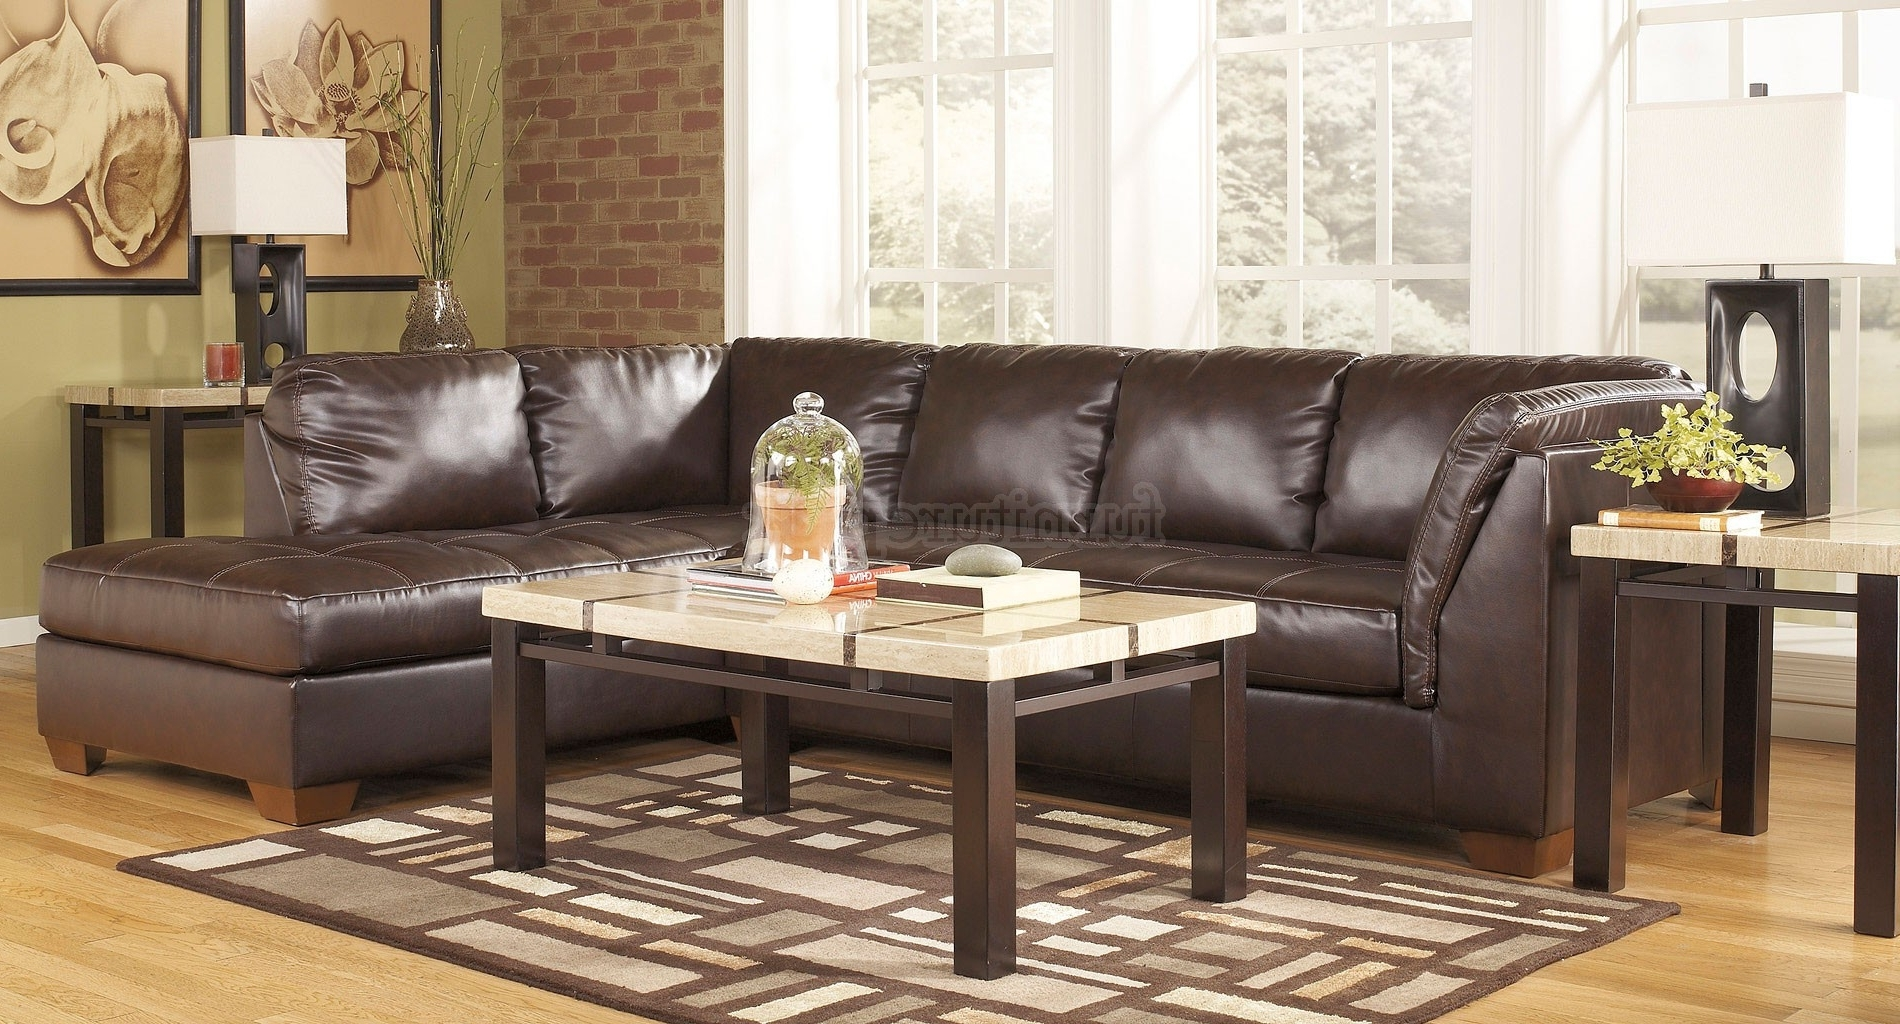 Sectional Sofas Under 300 With Regard To Latest Tallahassee Sectional Sofas (Gallery 9 of 20)